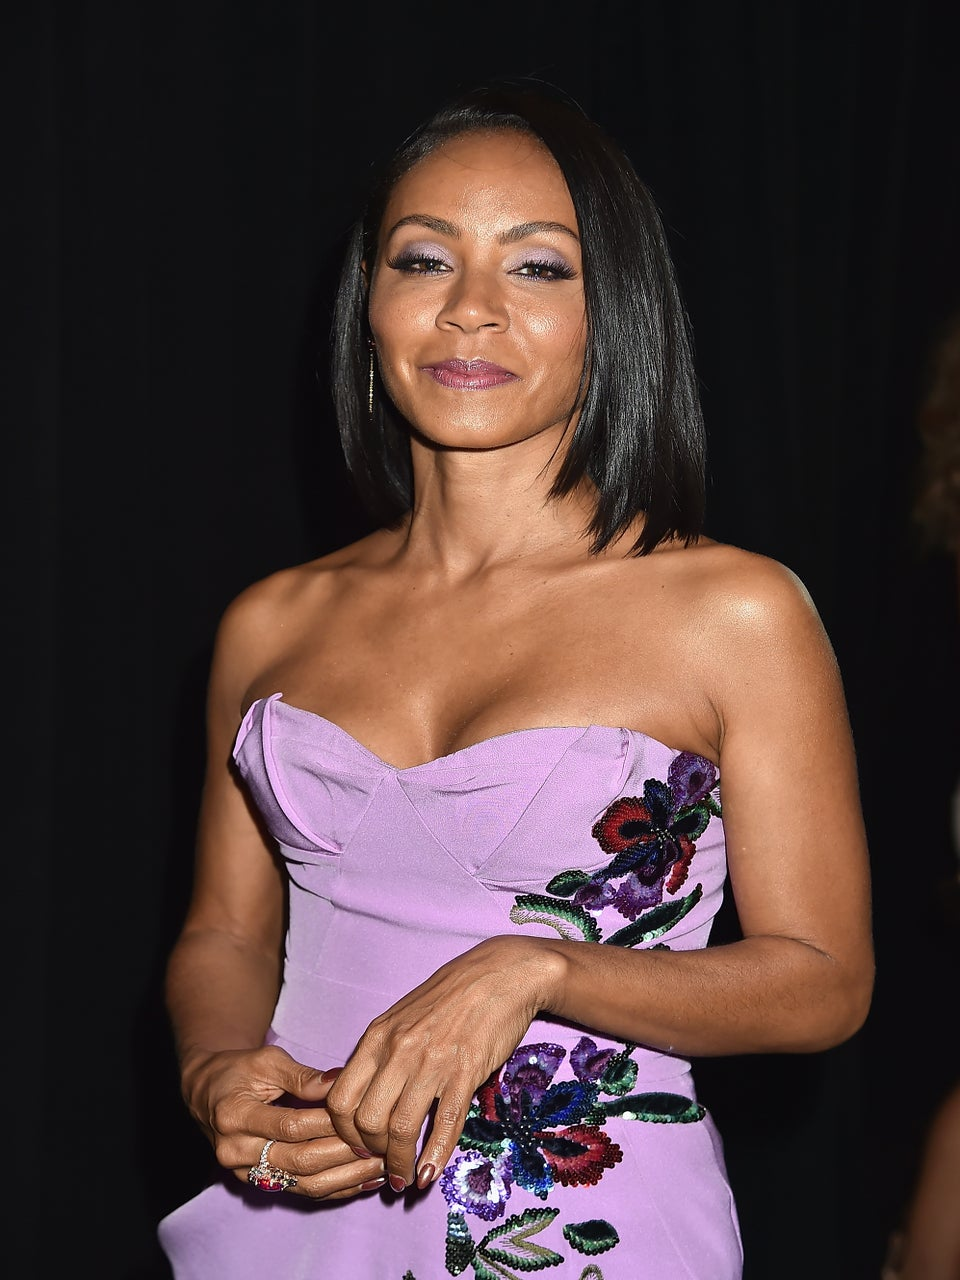 The Quick Read: Jada Pinkett Smith and Gabrielle Union Dish On Their 17-Year Silent Feud